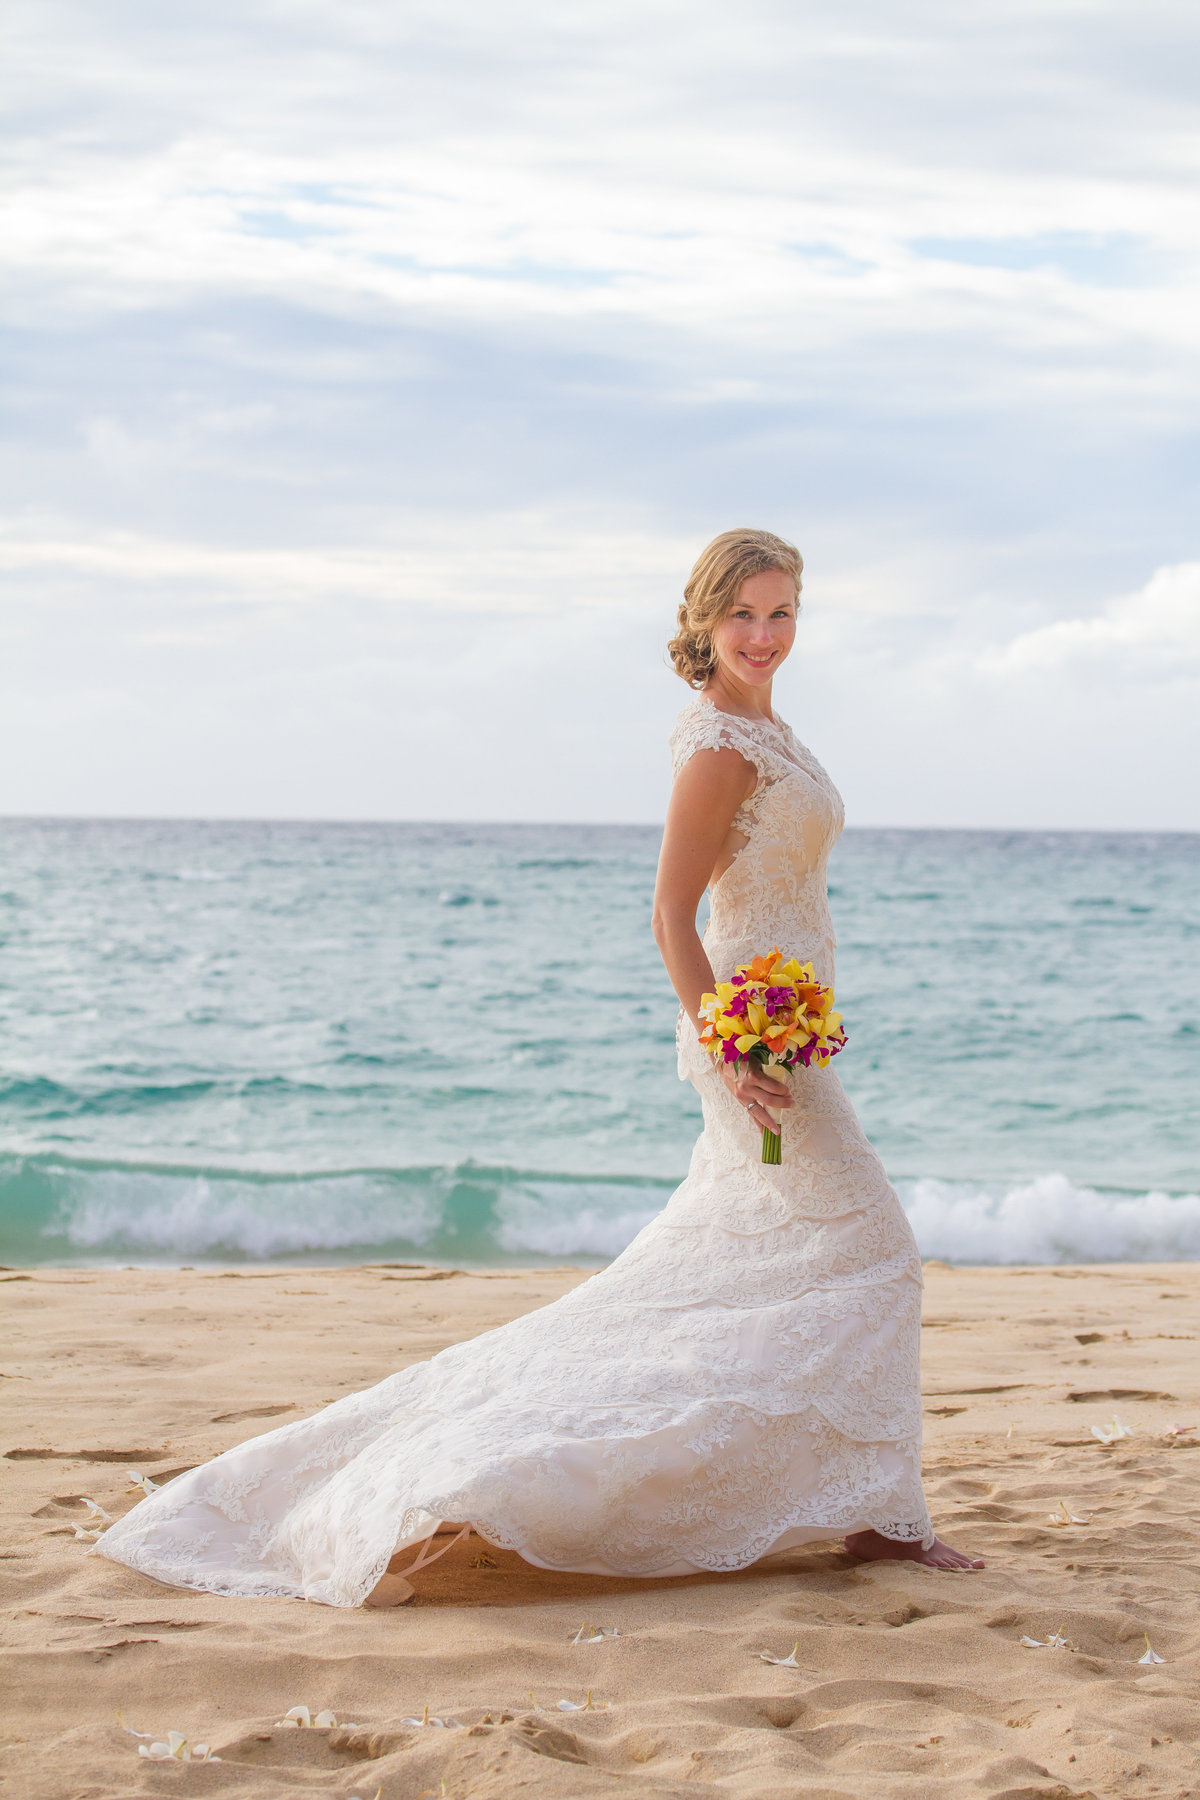 Bride on the beach in Kauai.